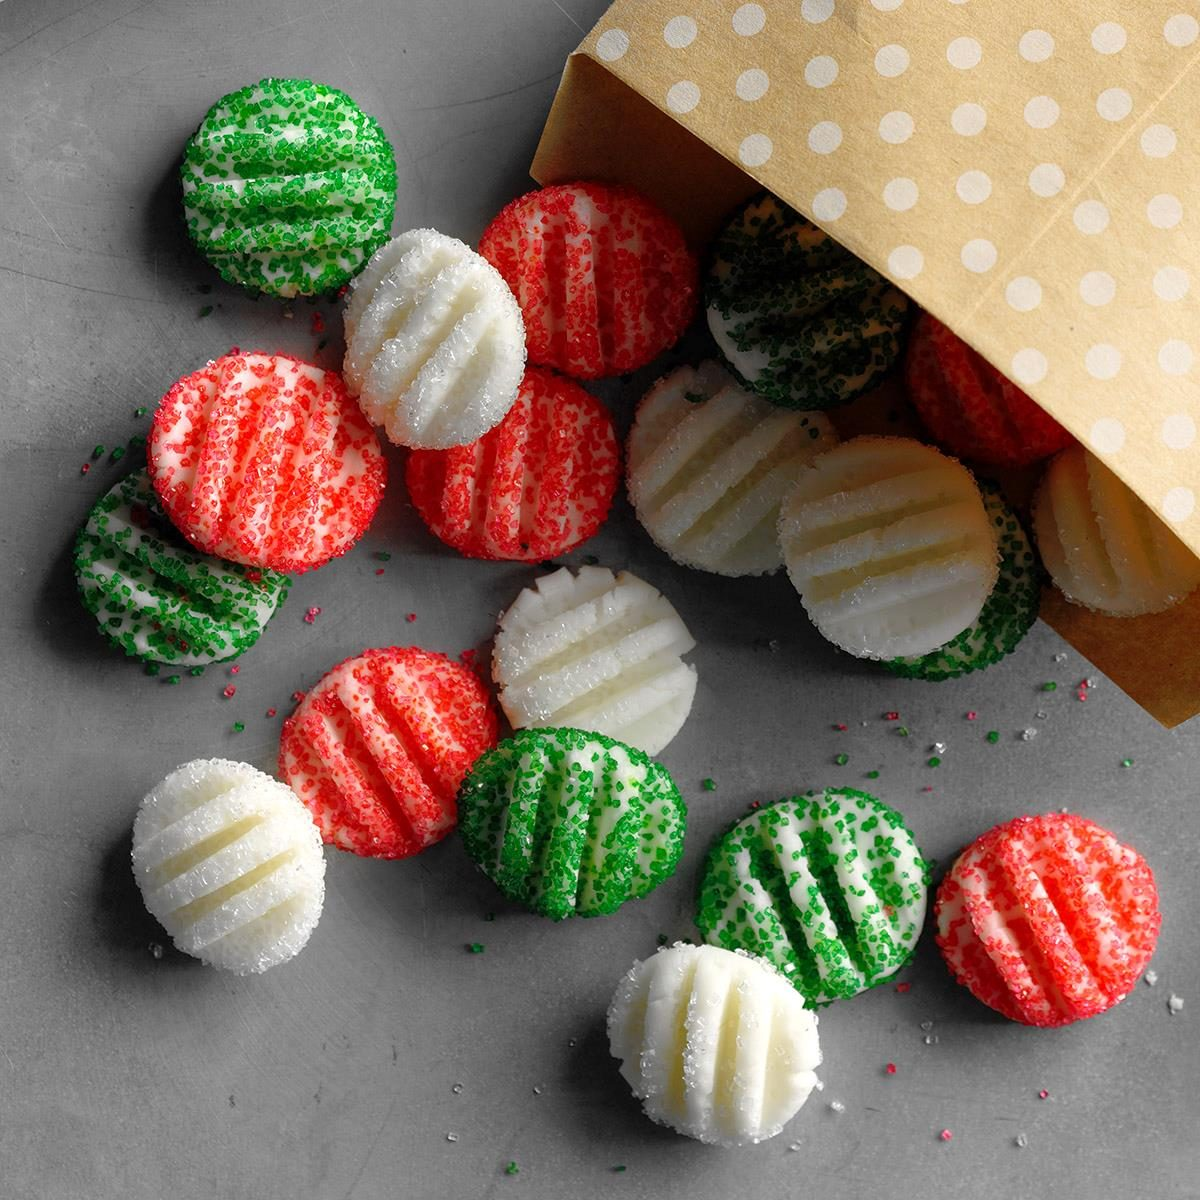 Top 10 homemade christmas candy recipes taste of home for Homemade candy for christmas recipes